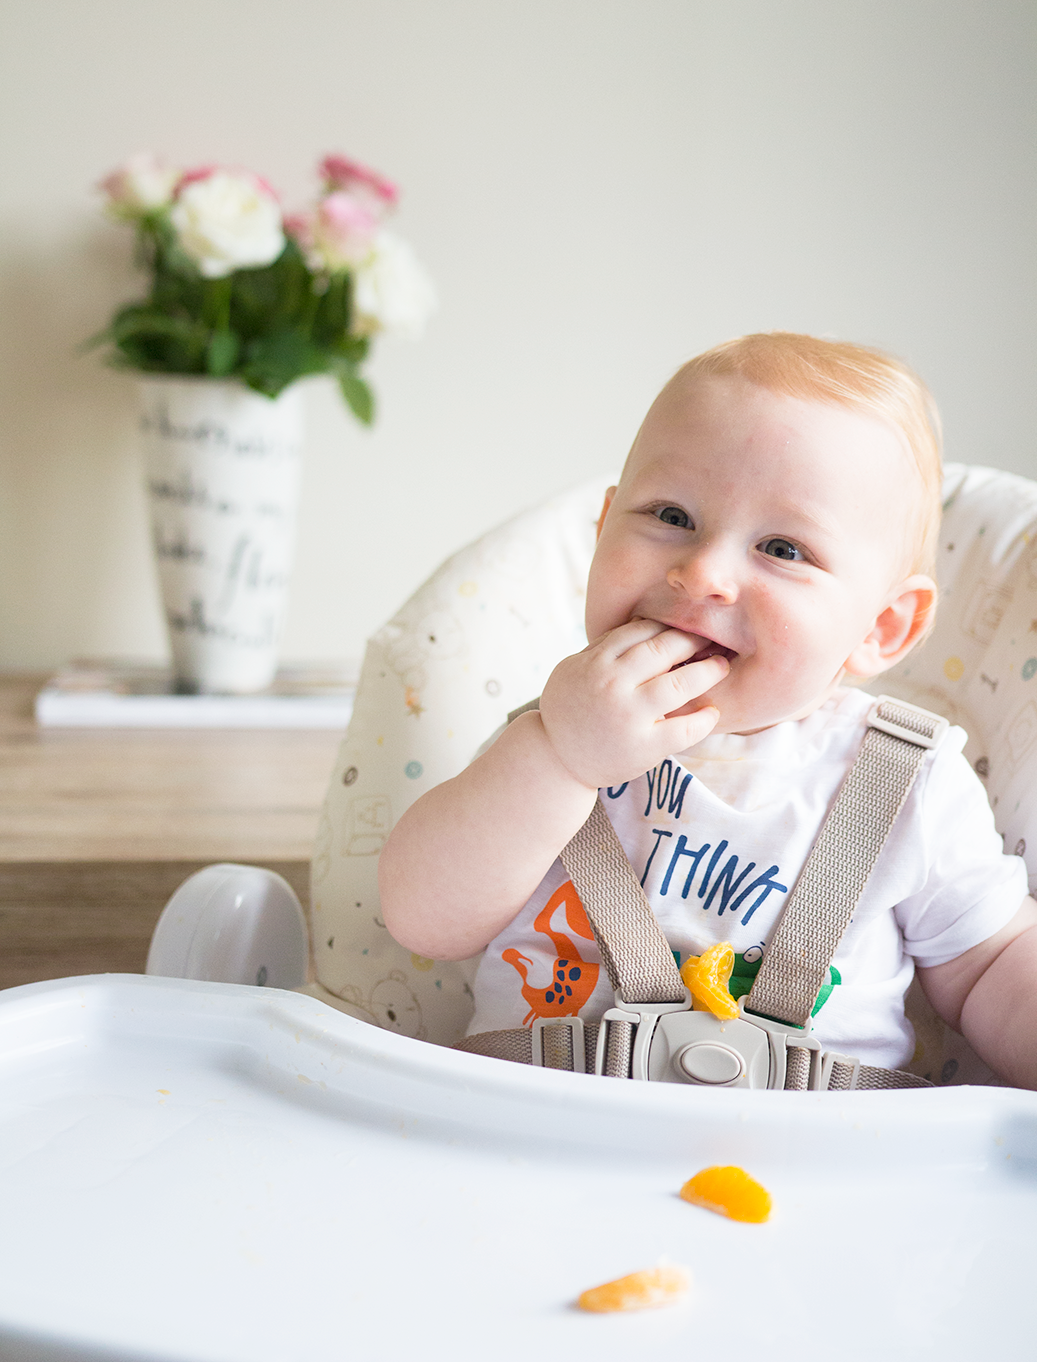 weaning a baby weaning tips our weaning experience